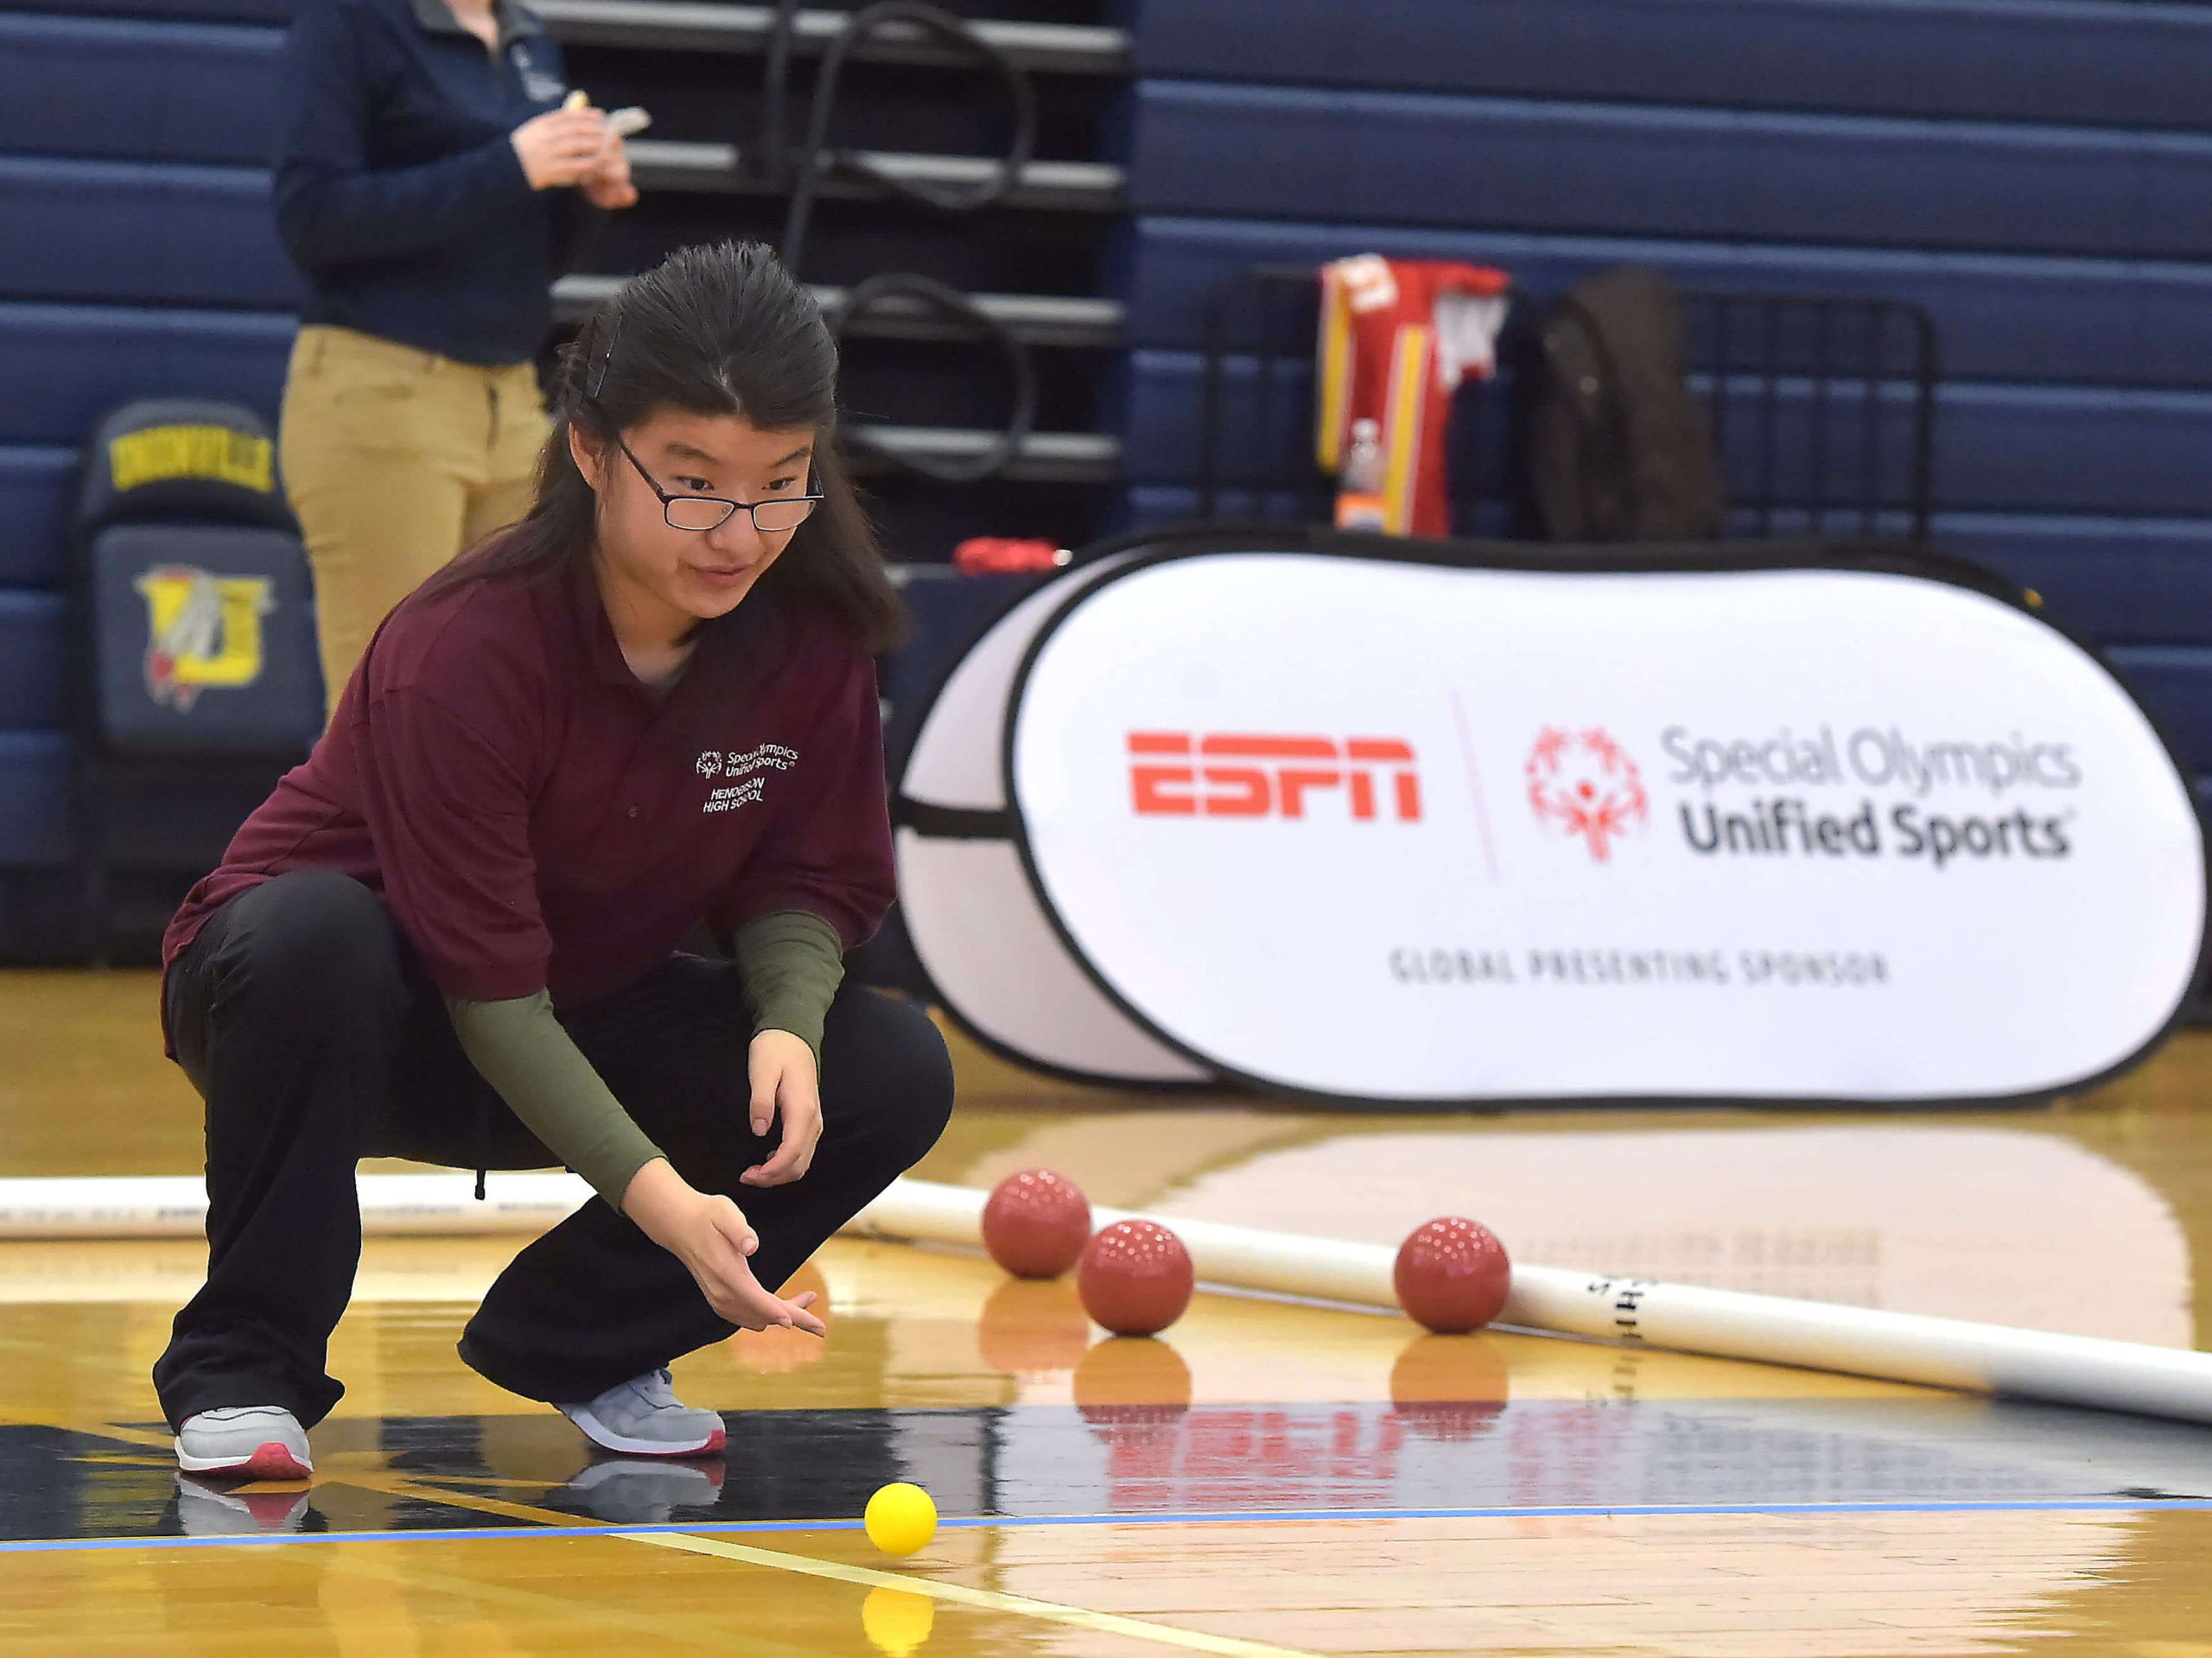 Inaugural Event Proves Bocce to Be a Great Vehicle for Bringing Together Students of All Abilities